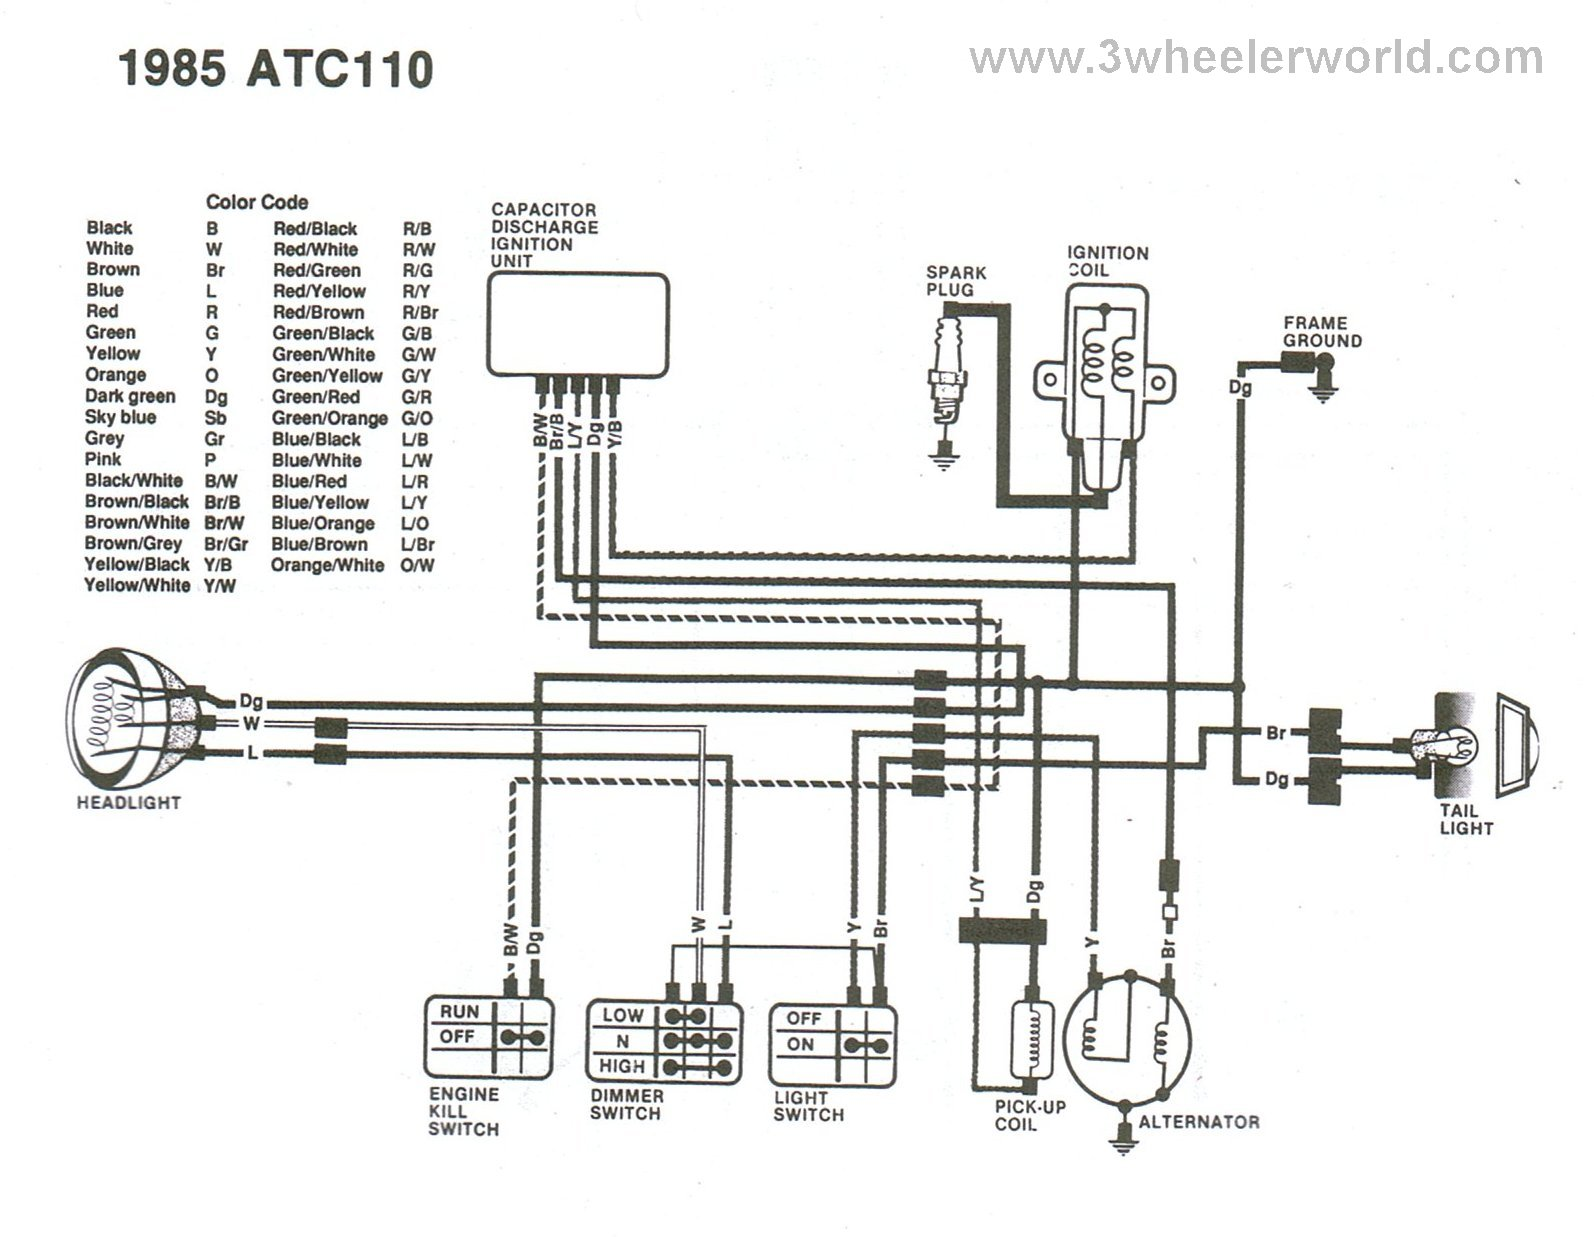 ATC110x85 3 wheeler world tech help honda wiring diagrams  at nearapp.co